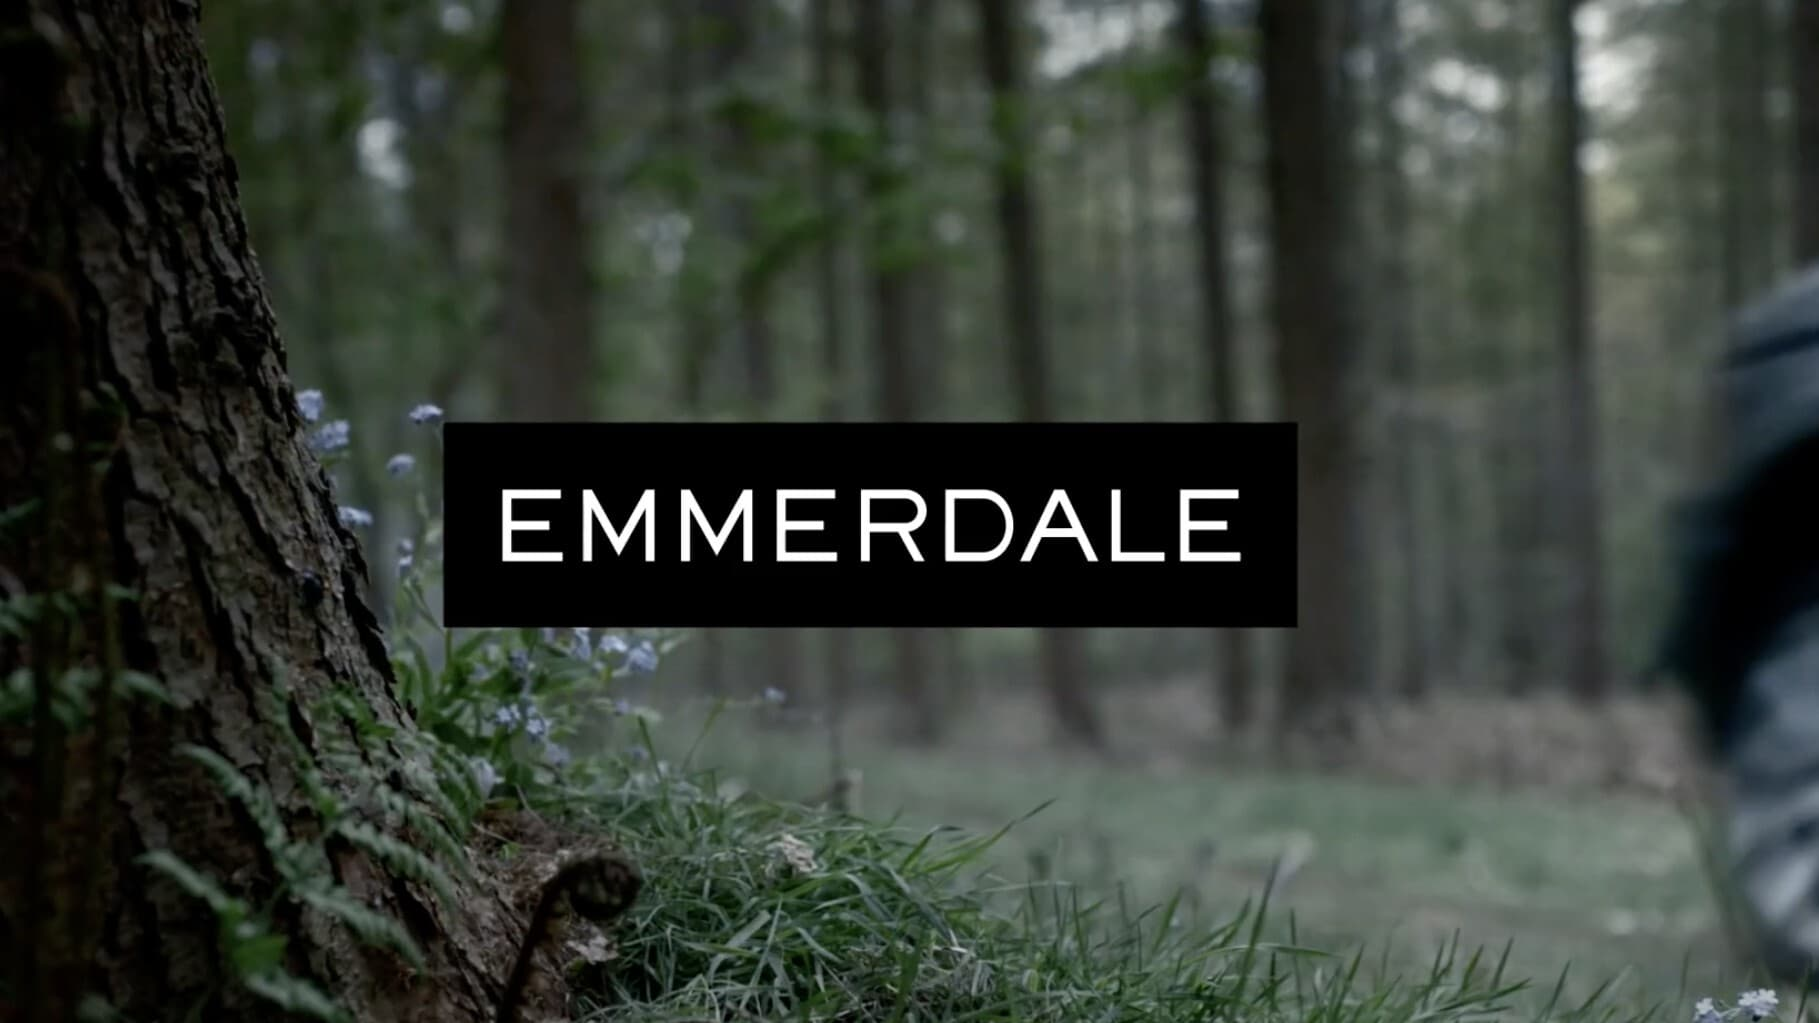 Emmerdale - Season 36 Episode 68 : March 21, 2007